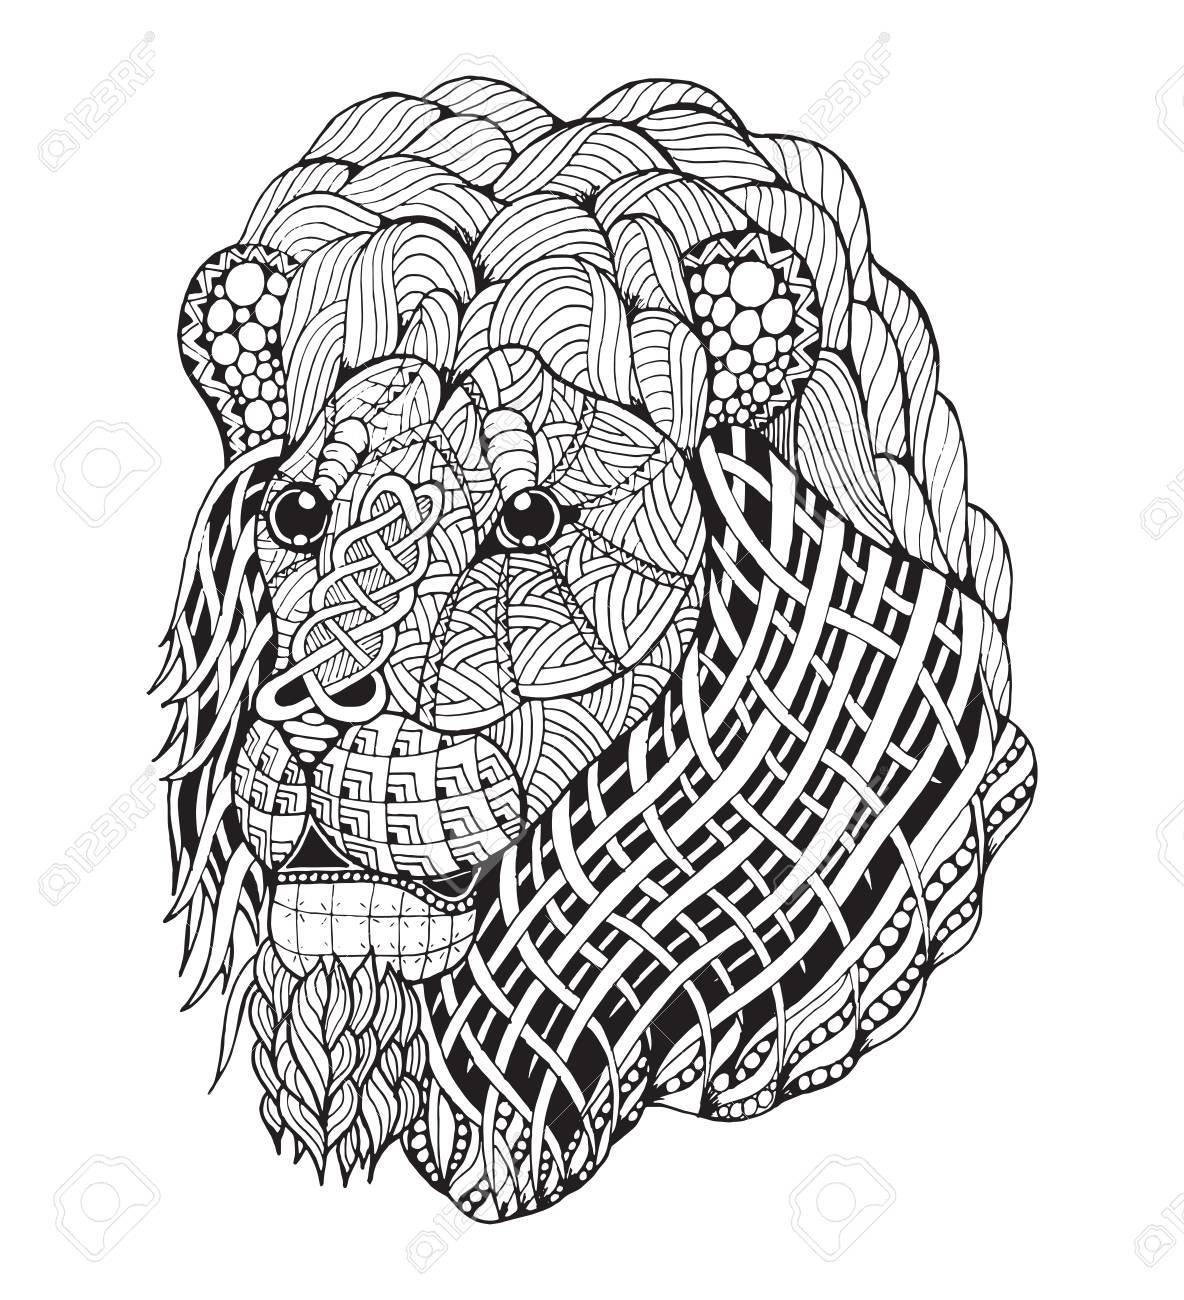 Lion head stylized illustration freehand pencil hand drawn pattern zen art